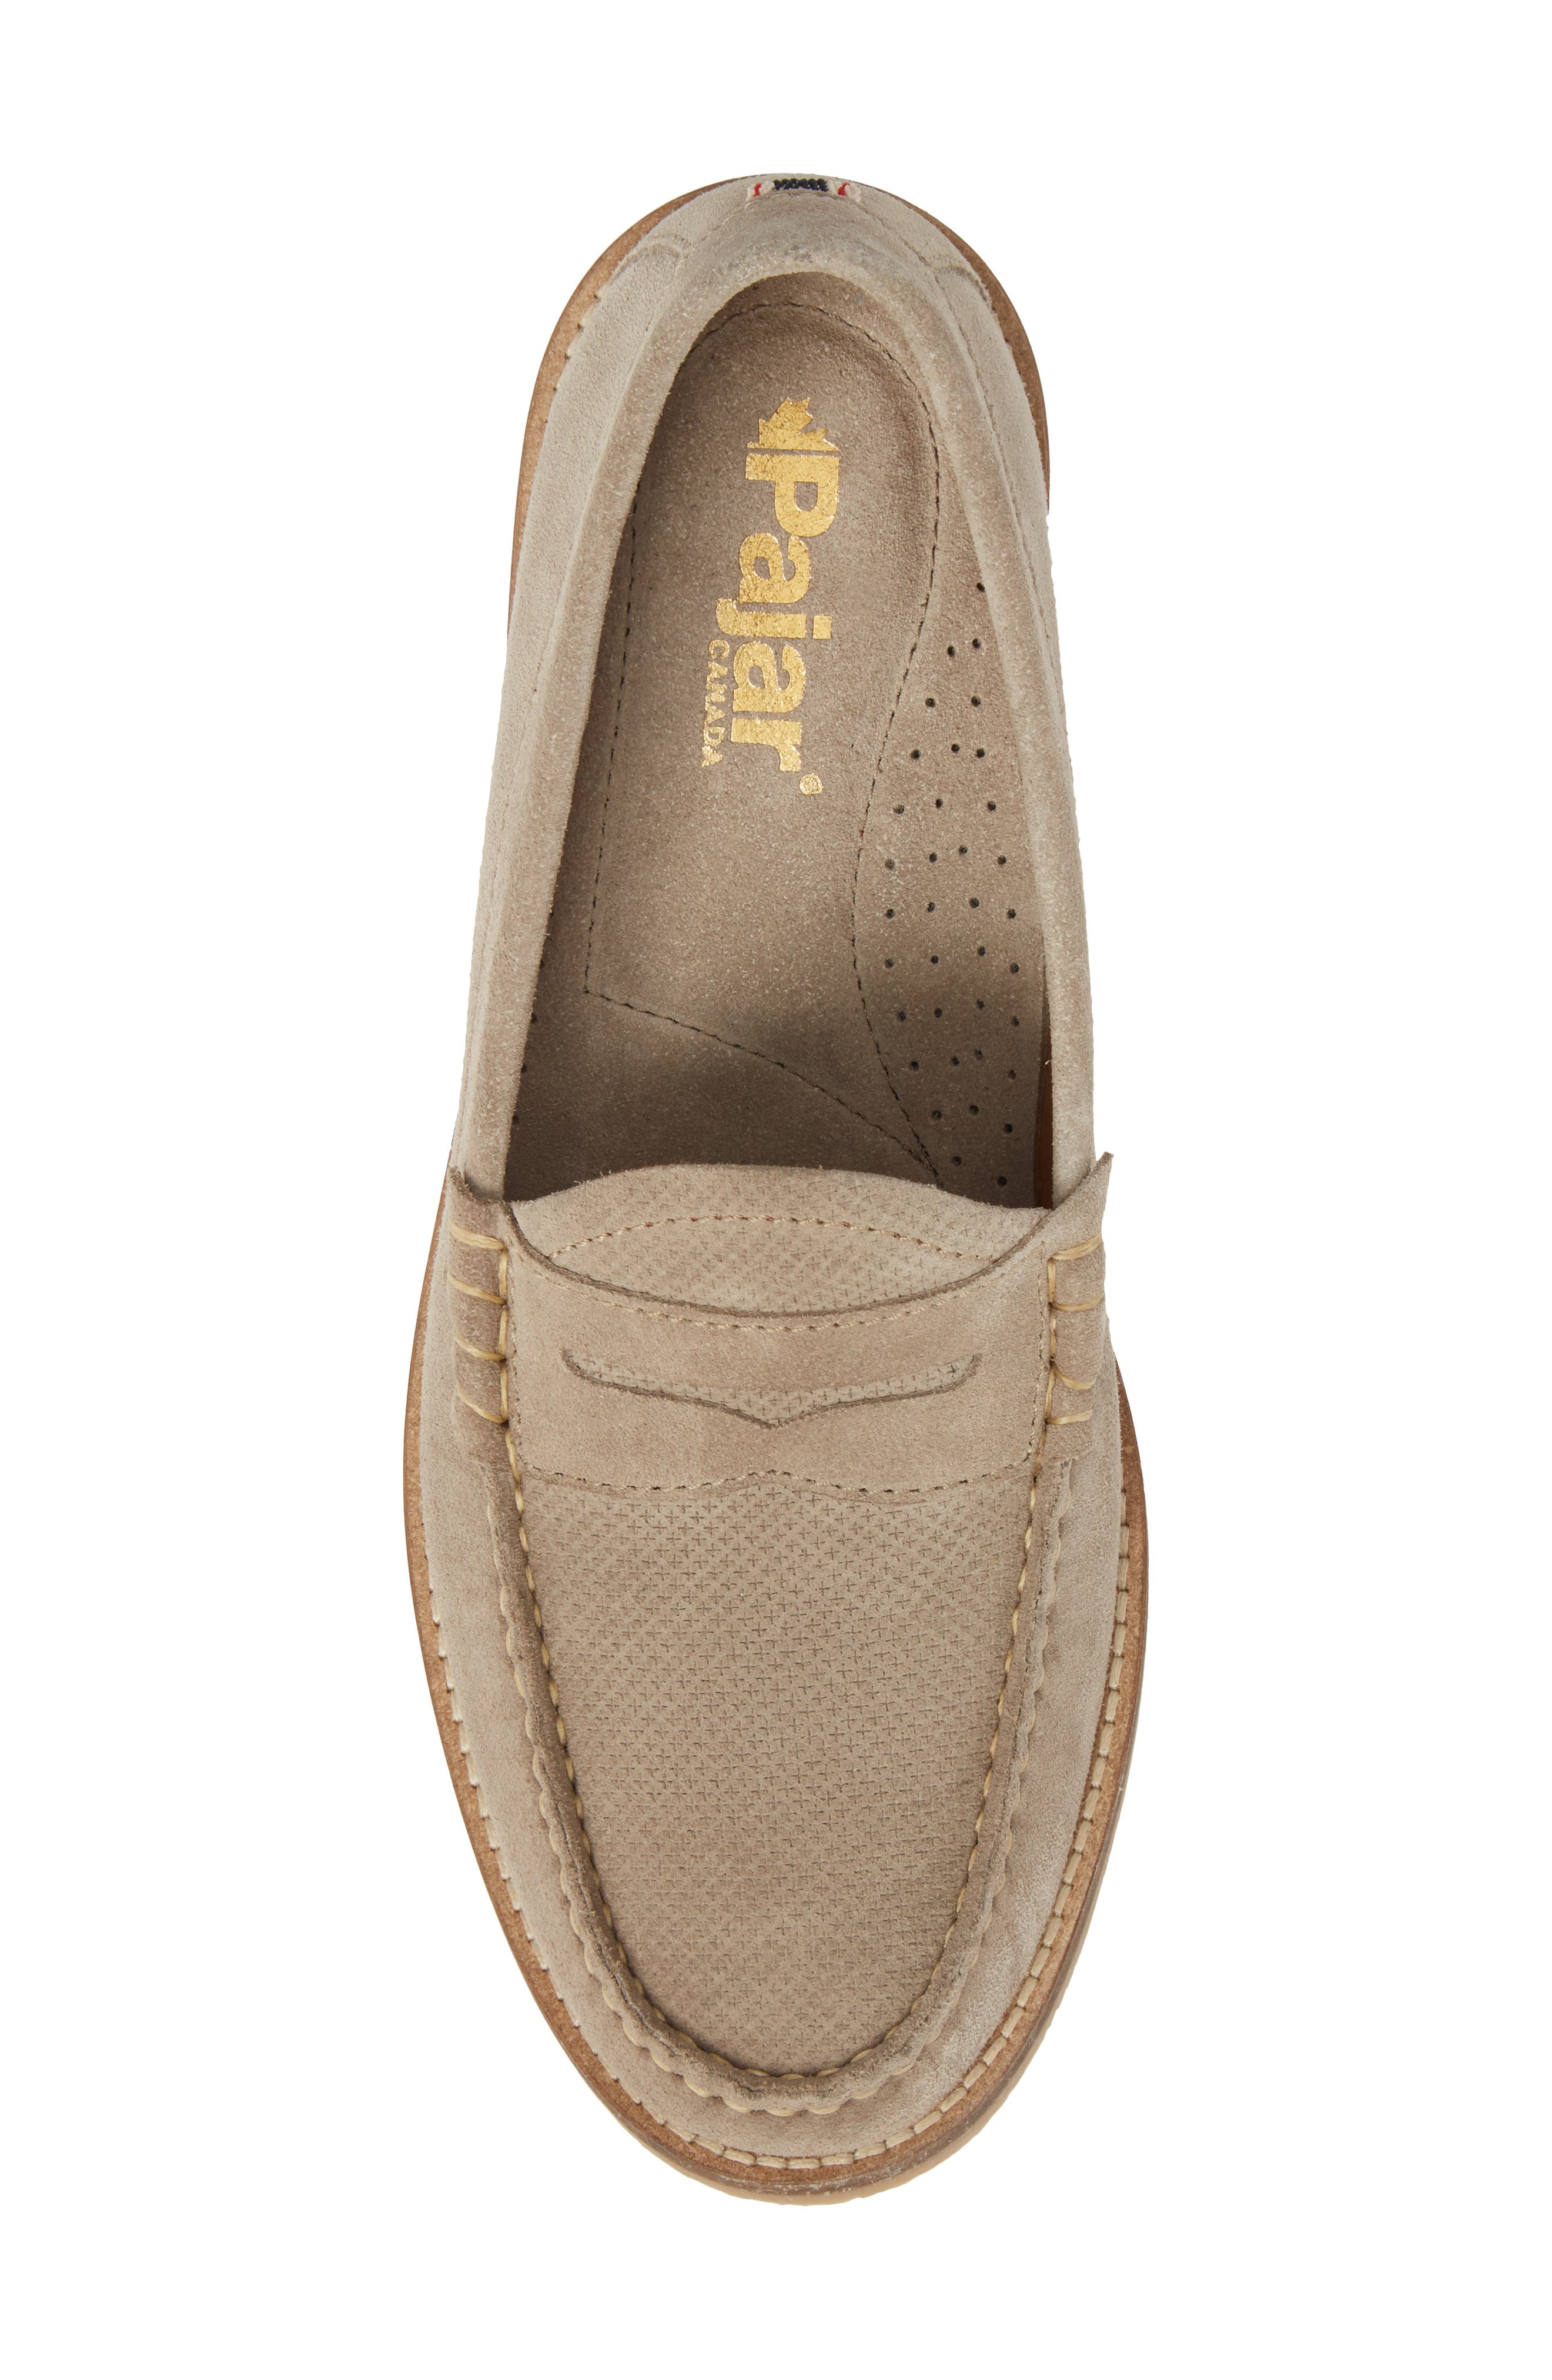 Wayne Textured Penny Loafer,                             Alternate thumbnail 5, color,                             EARTH BEIGE